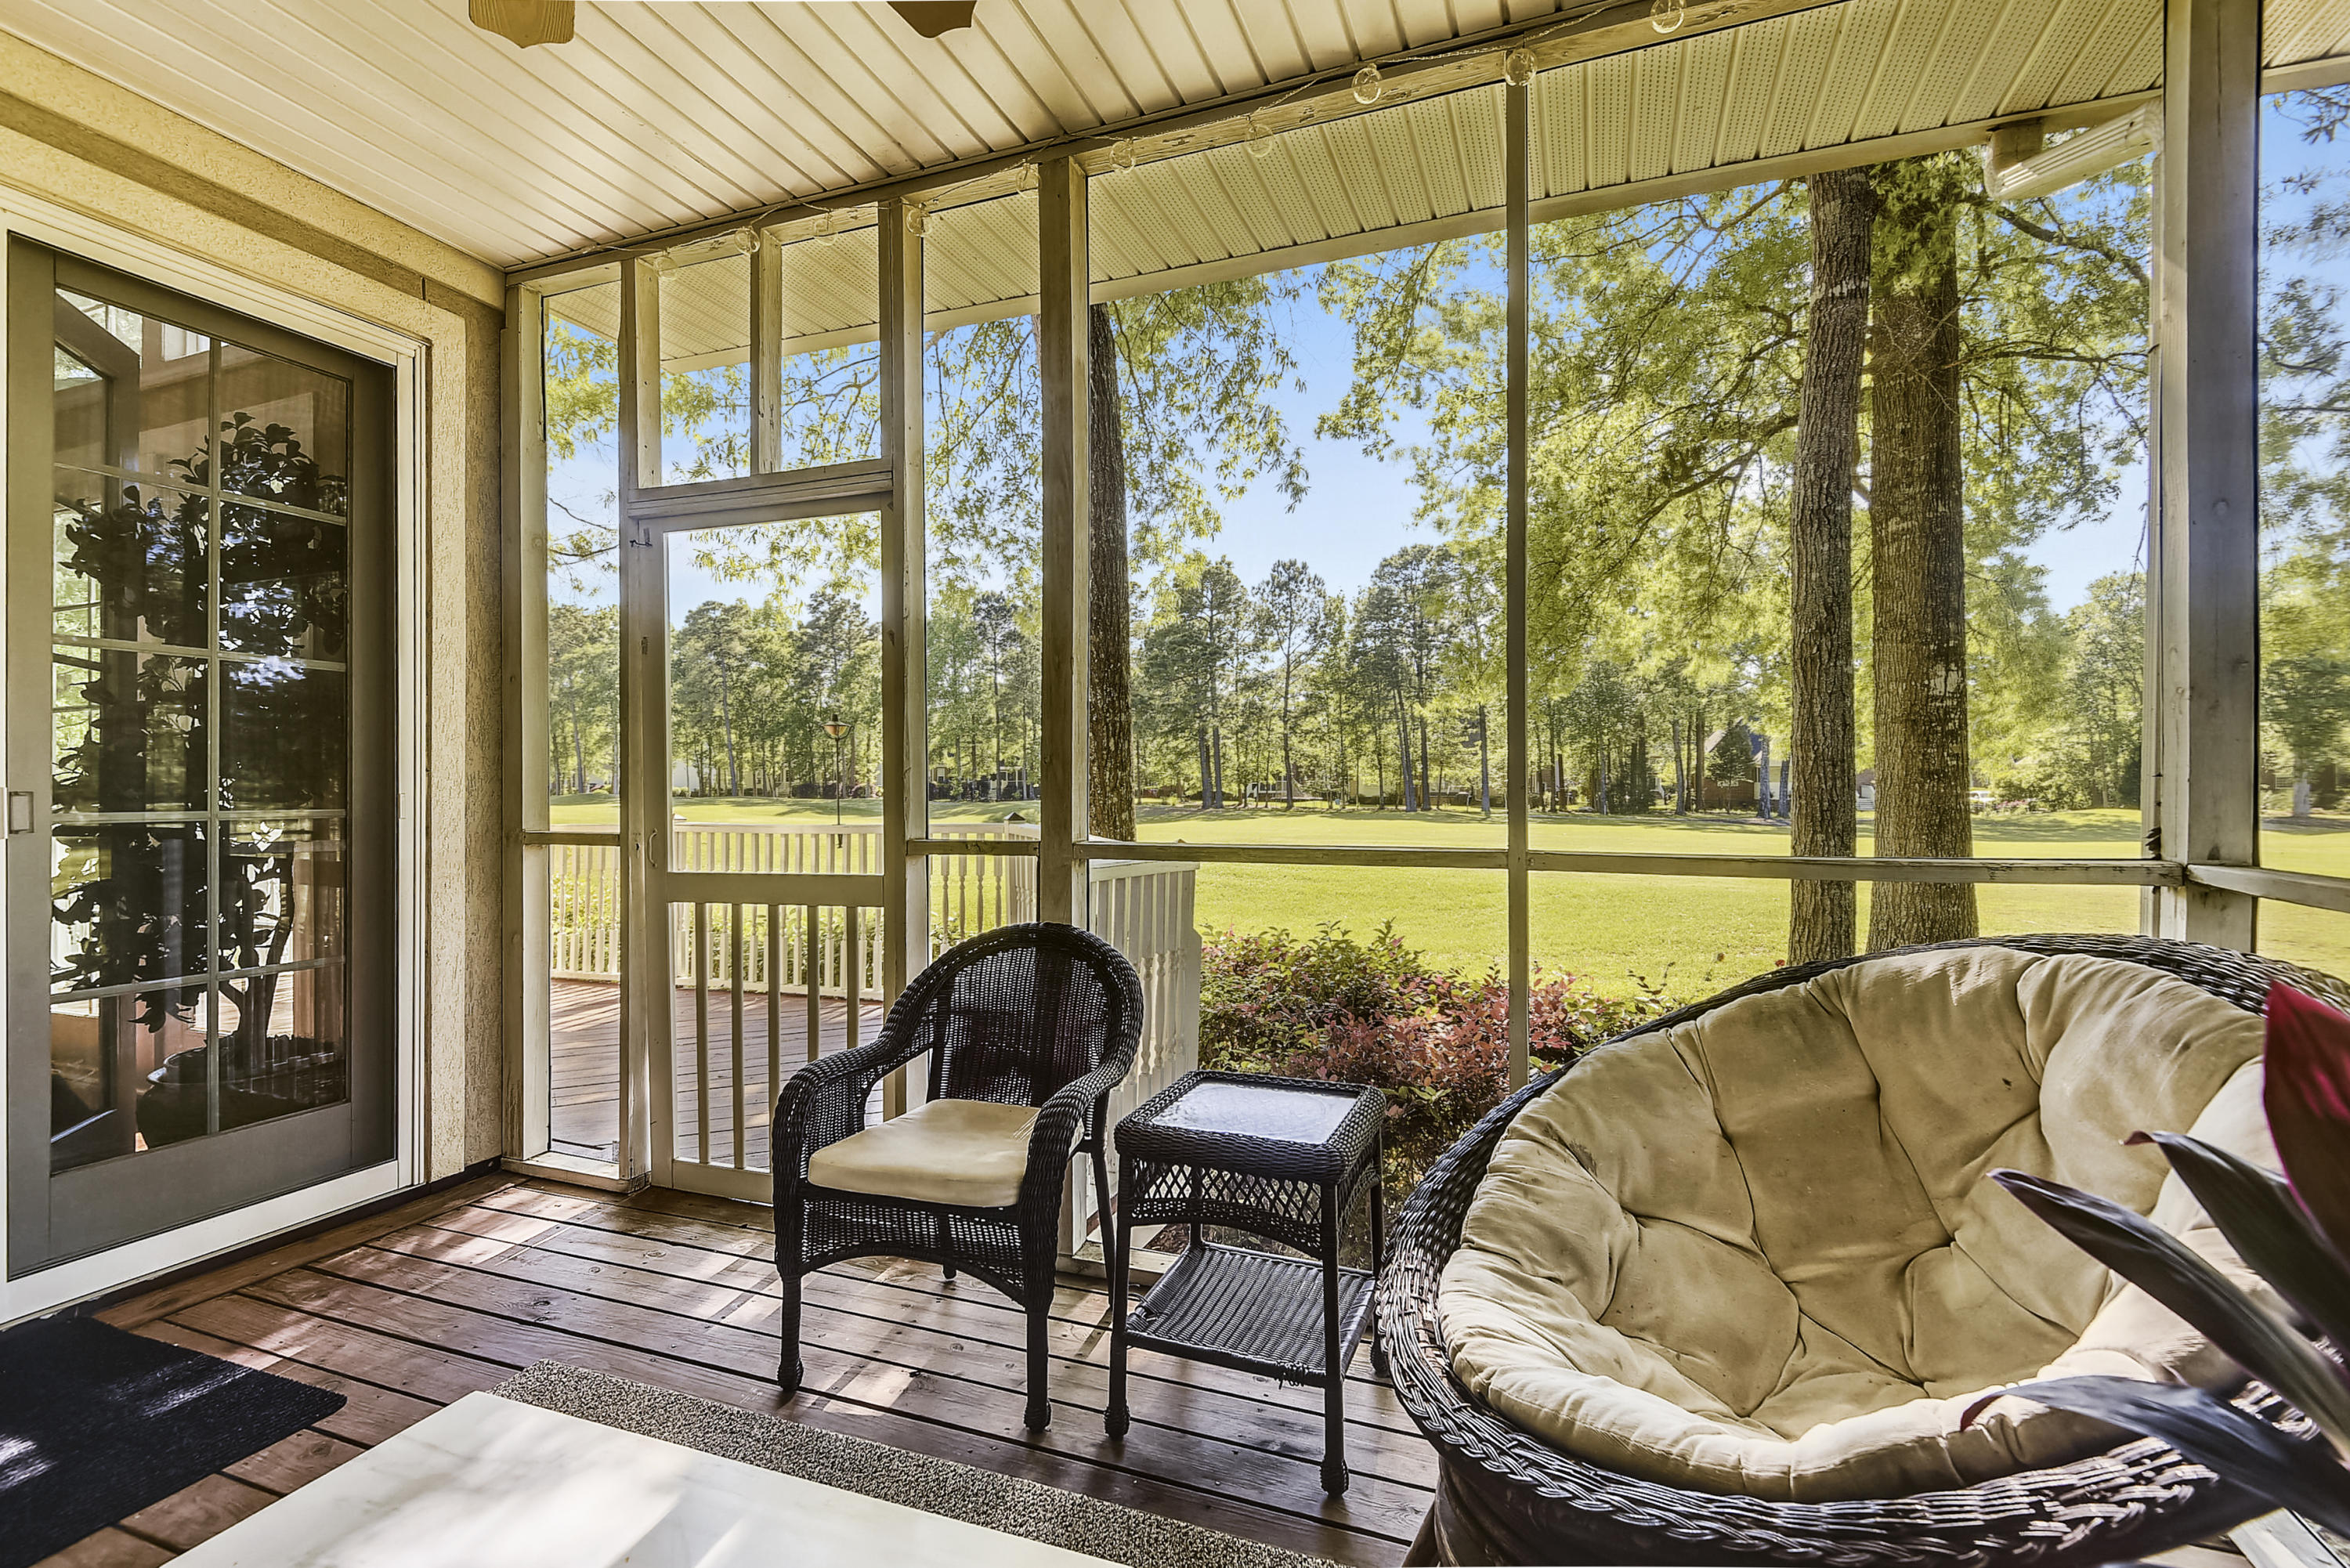 Coosaw Creek Country Club Homes For Sale - 8855 Fairway Woods, North Charleston, SC - 27